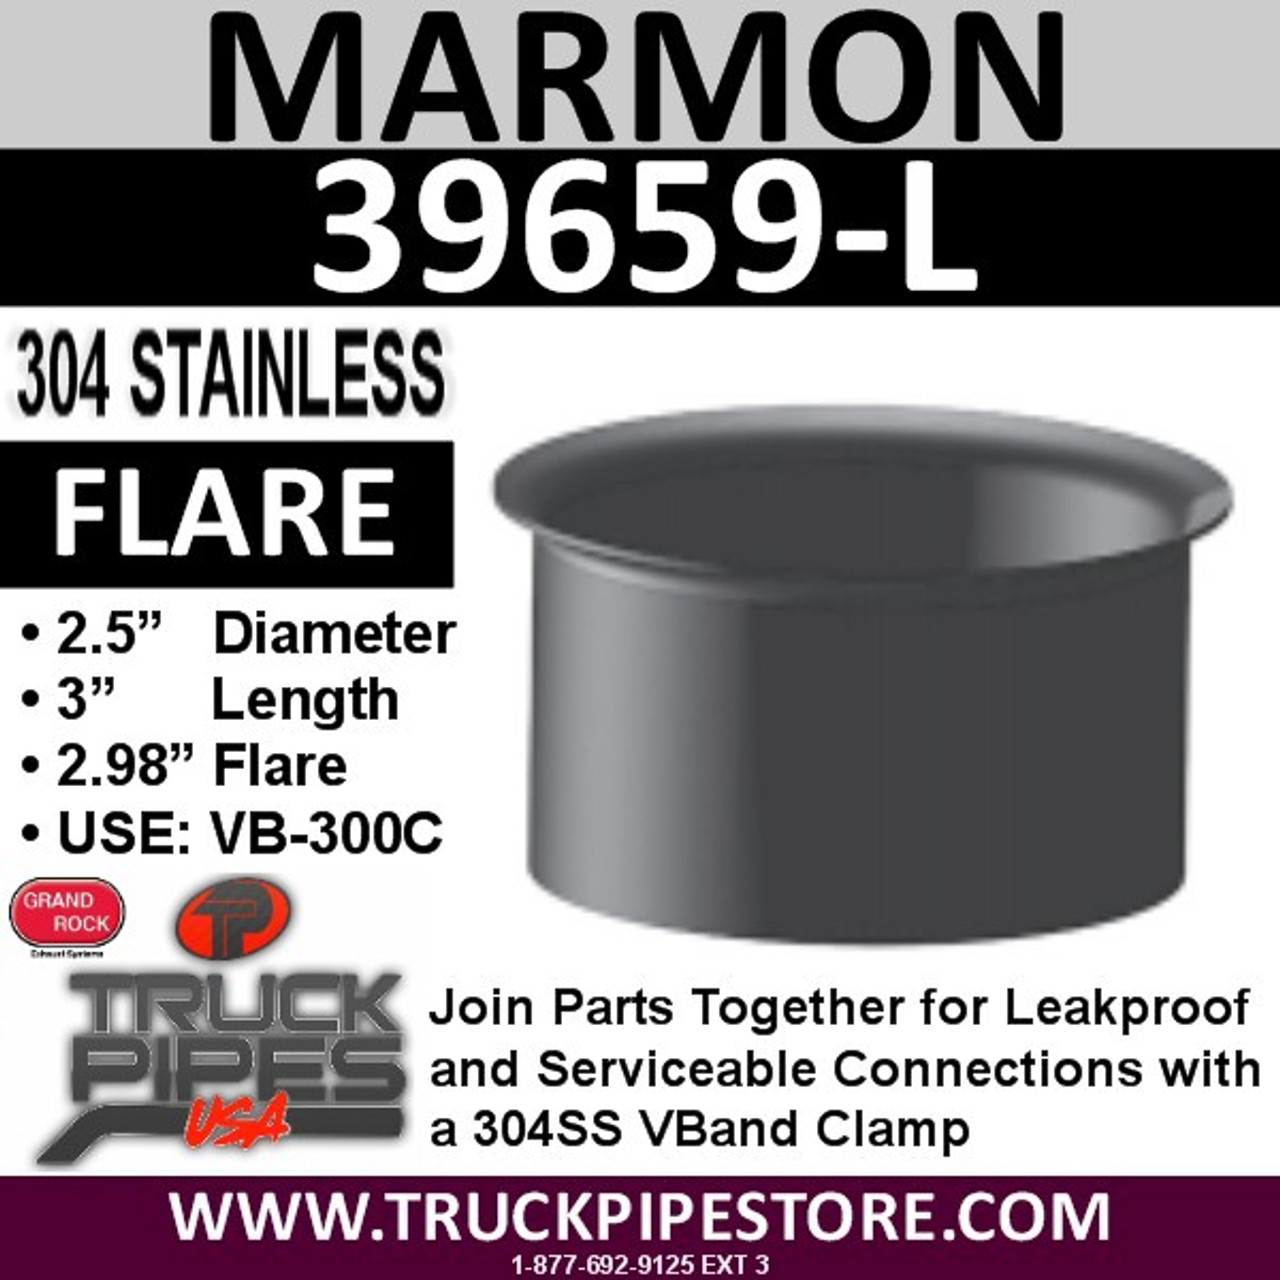 "2.5"" Marmon Exhaust 2.98"" Flare 304 Stainless Steel 39659-L"